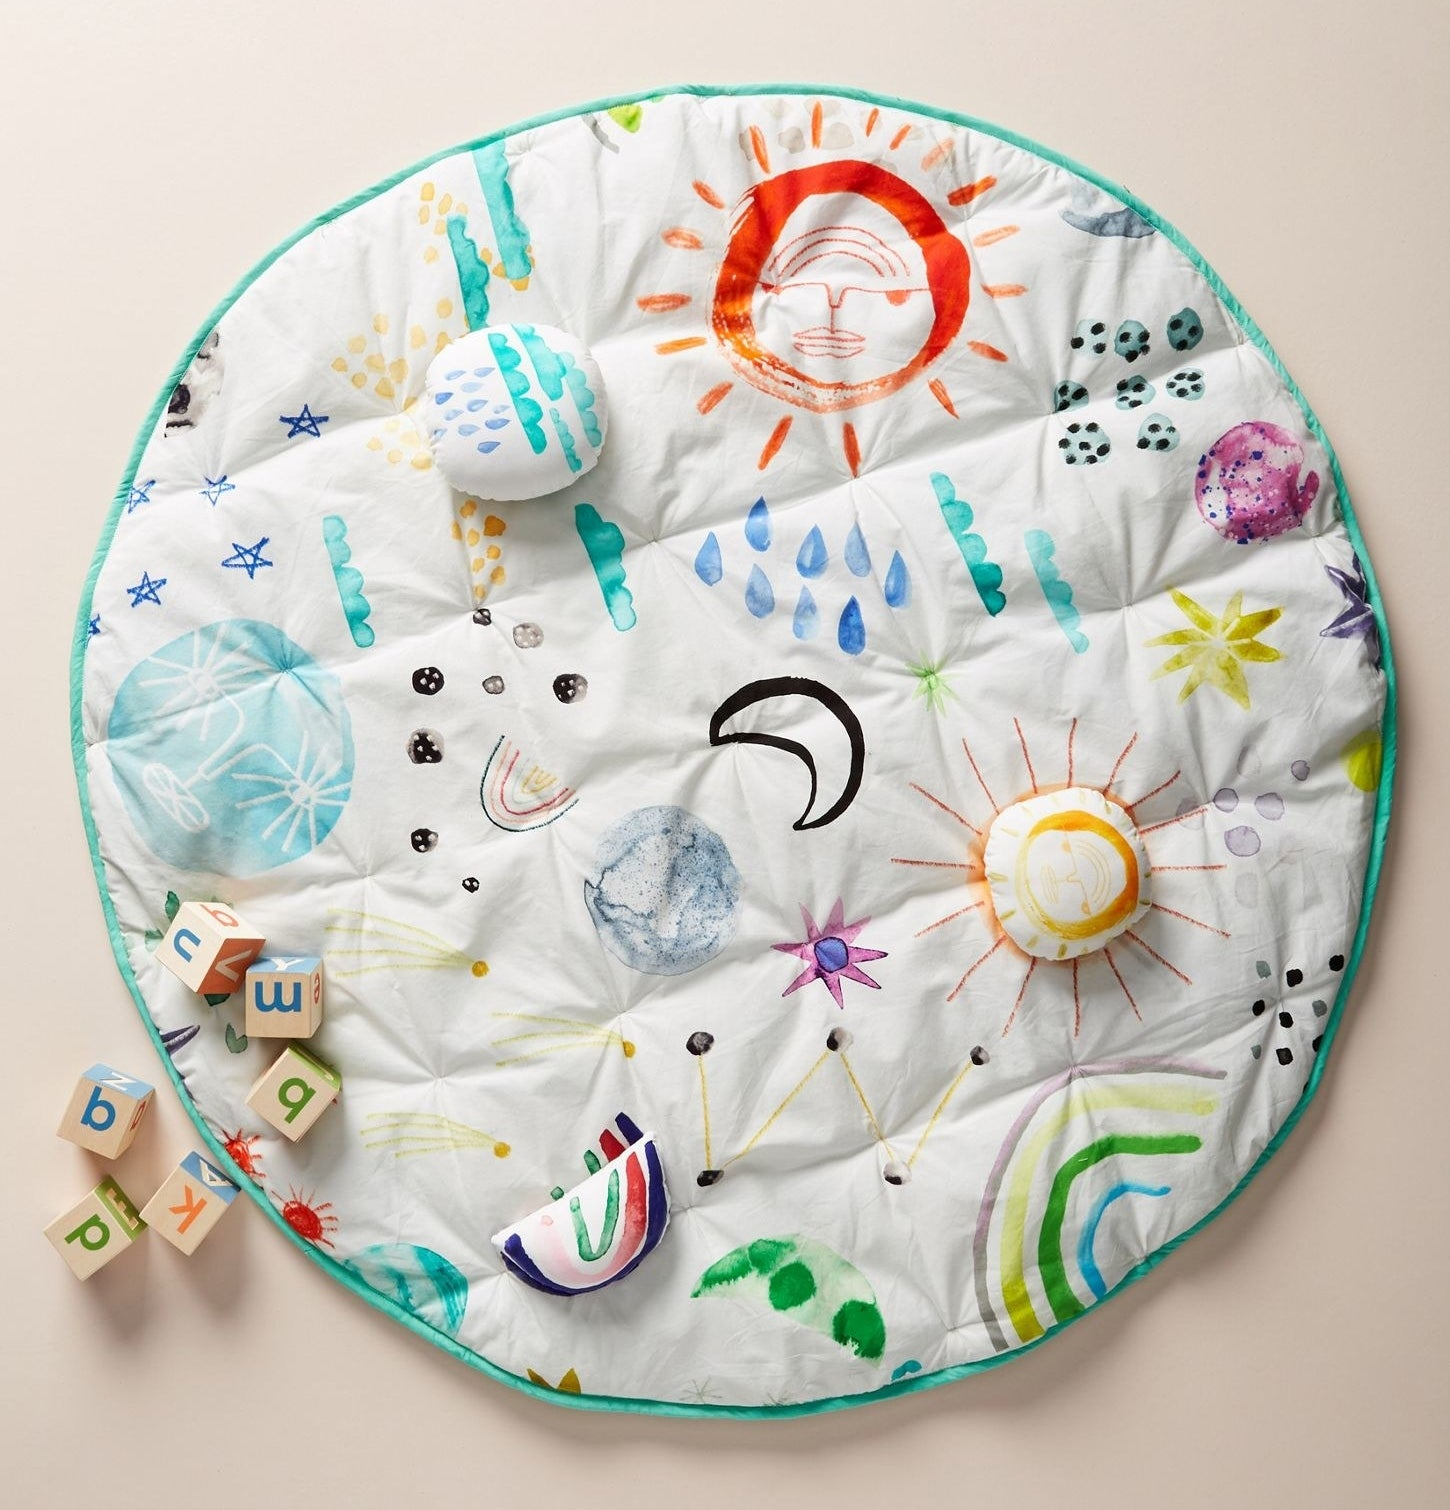 a circle mat covered in different stars and planets in addition to plush play parts